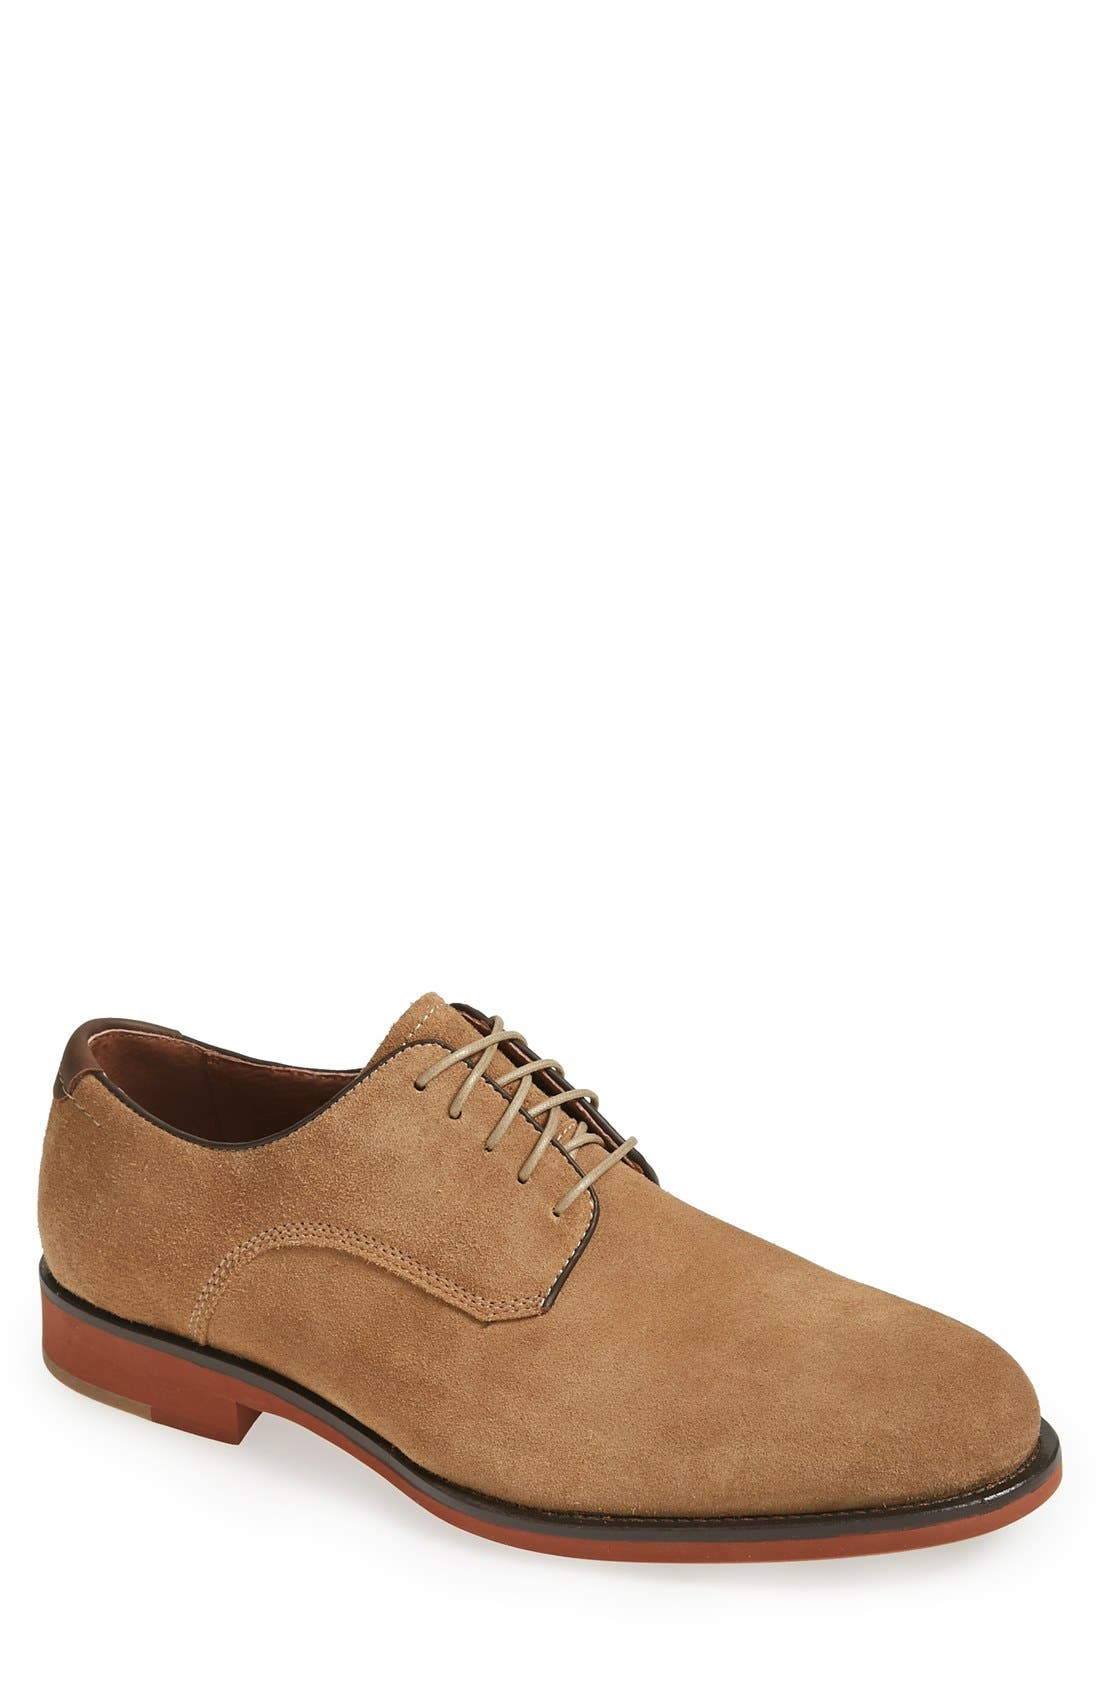 Main Image - Johnston & Murphy 'Ellington' Suede Buck Shoe (Men)